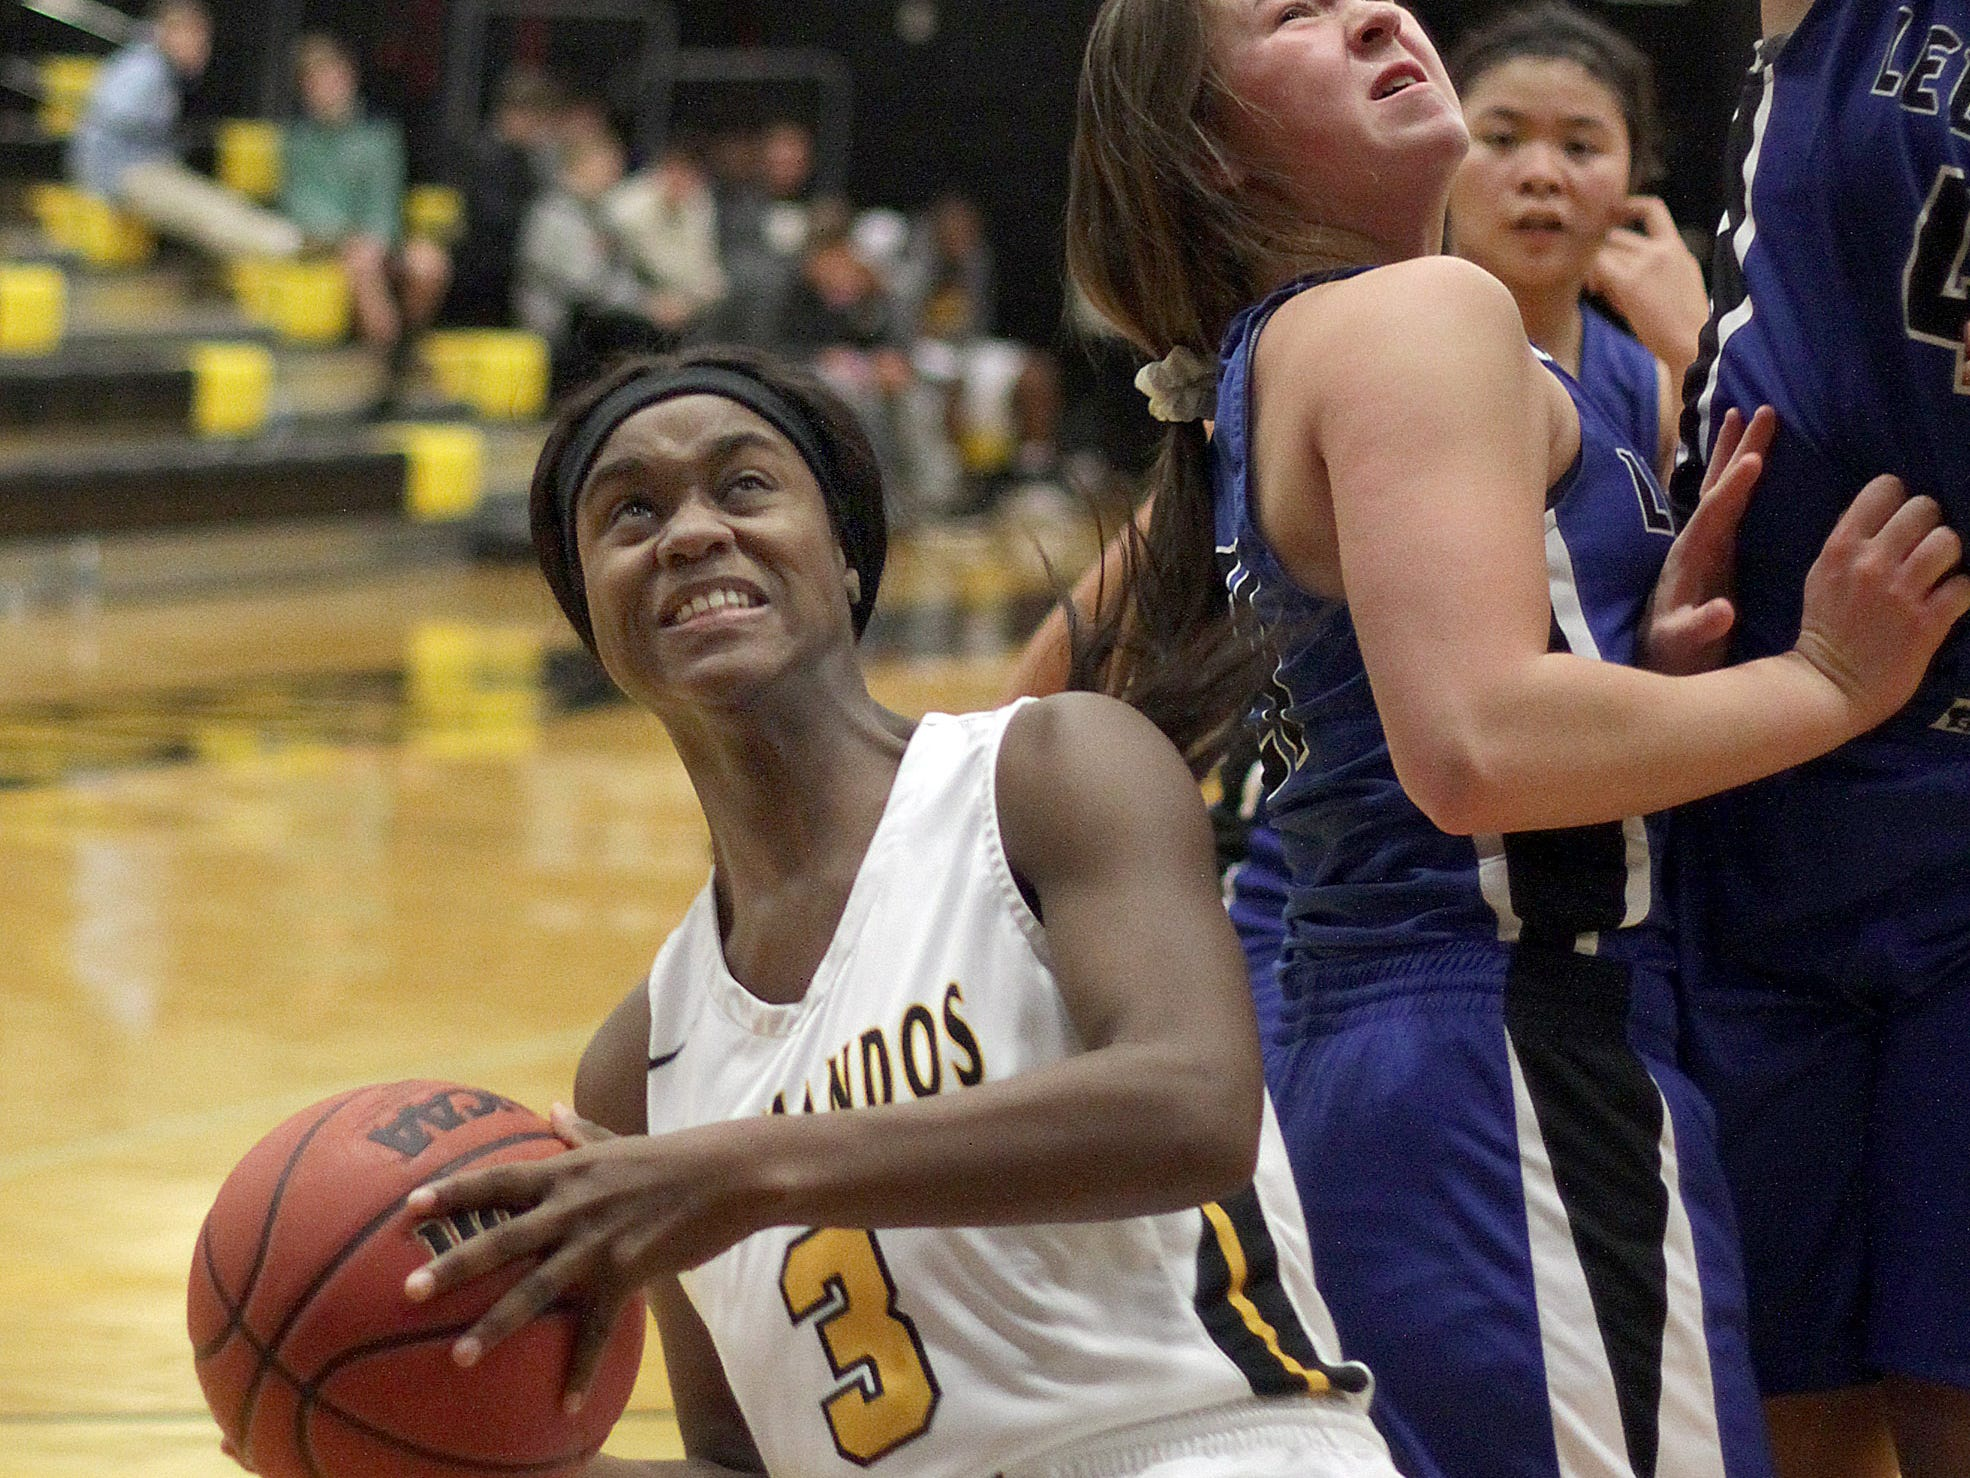 Hendersonville's Janaeya Mayes drives against Lebanon on Tuesday, December 11, 2018.